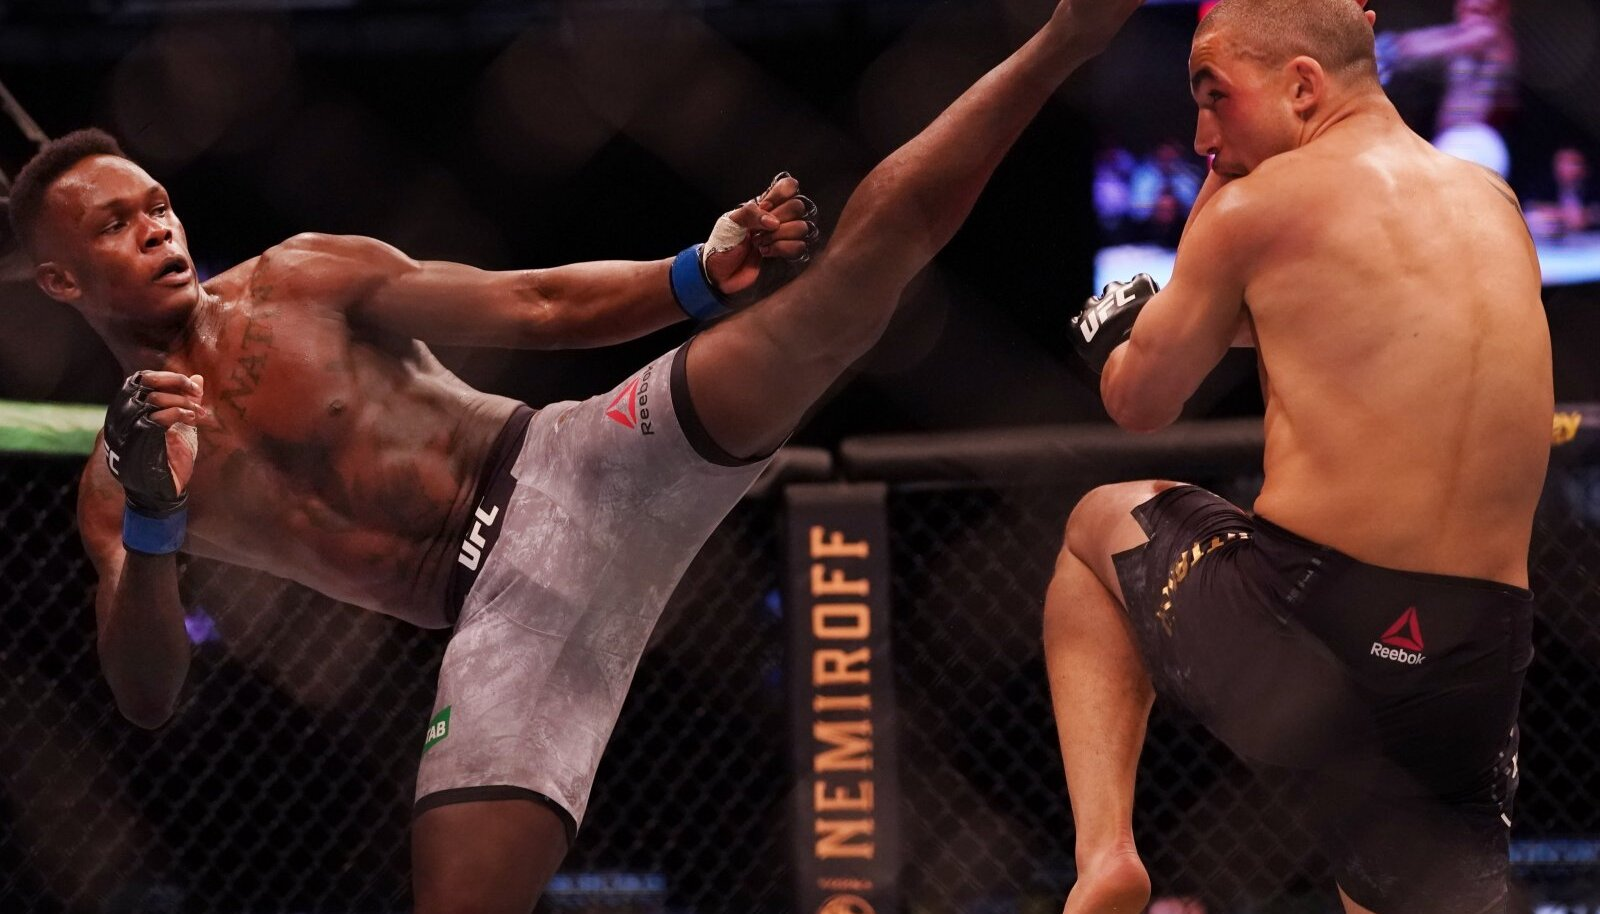 Ultimate Fighting Championship 243 in Melbourne